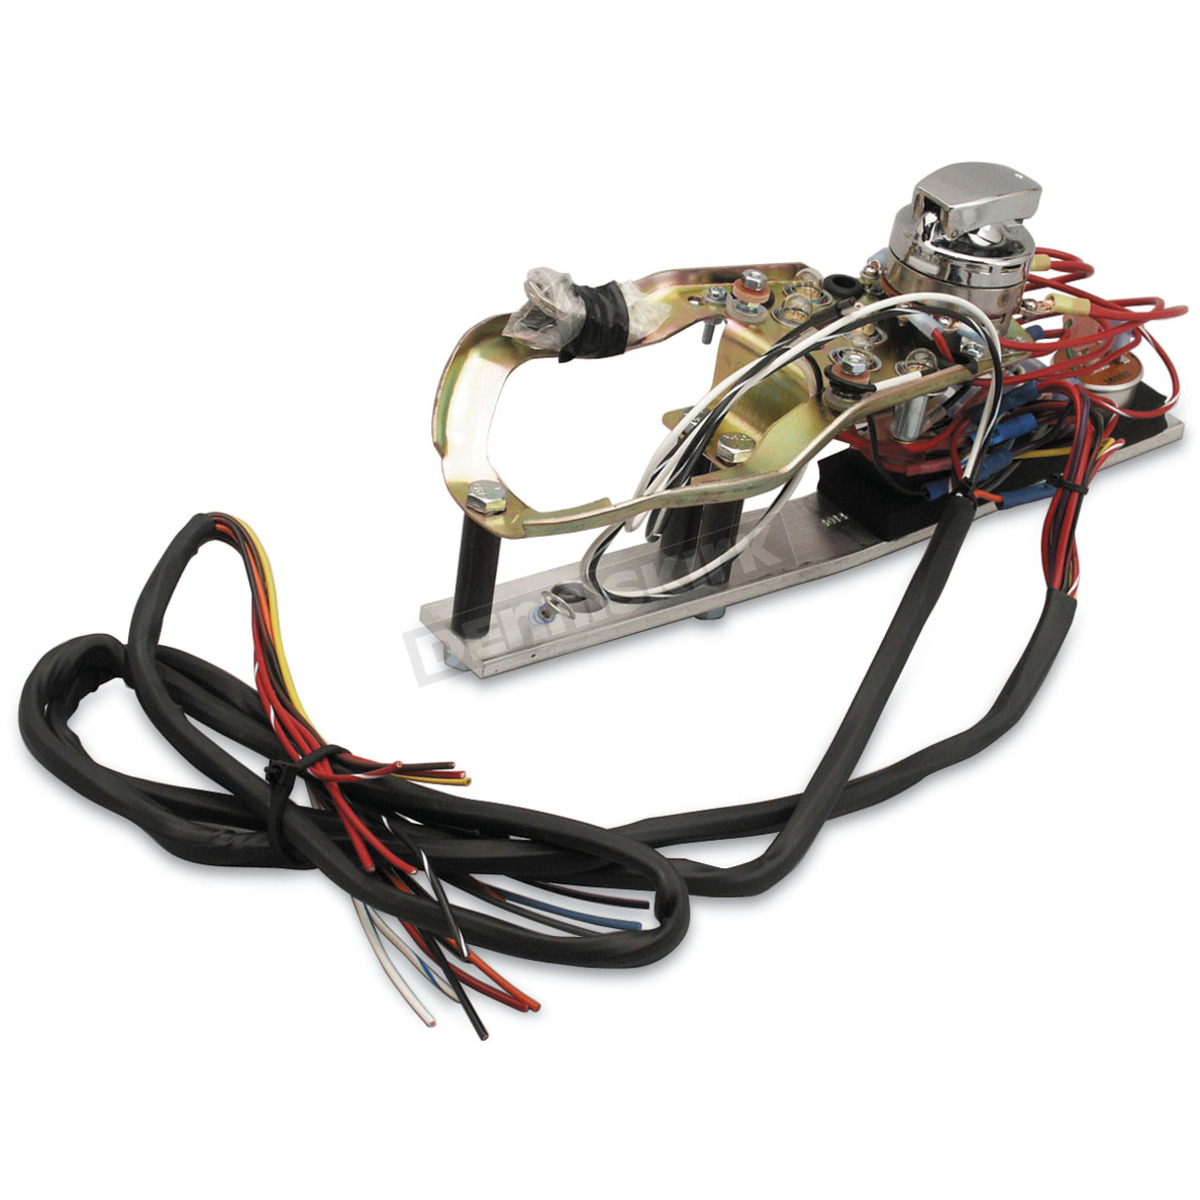 hight resolution of pro one dash base with wire harness kit 400909 harley harley wiring diagram for dummies harley davidson wire harness kit